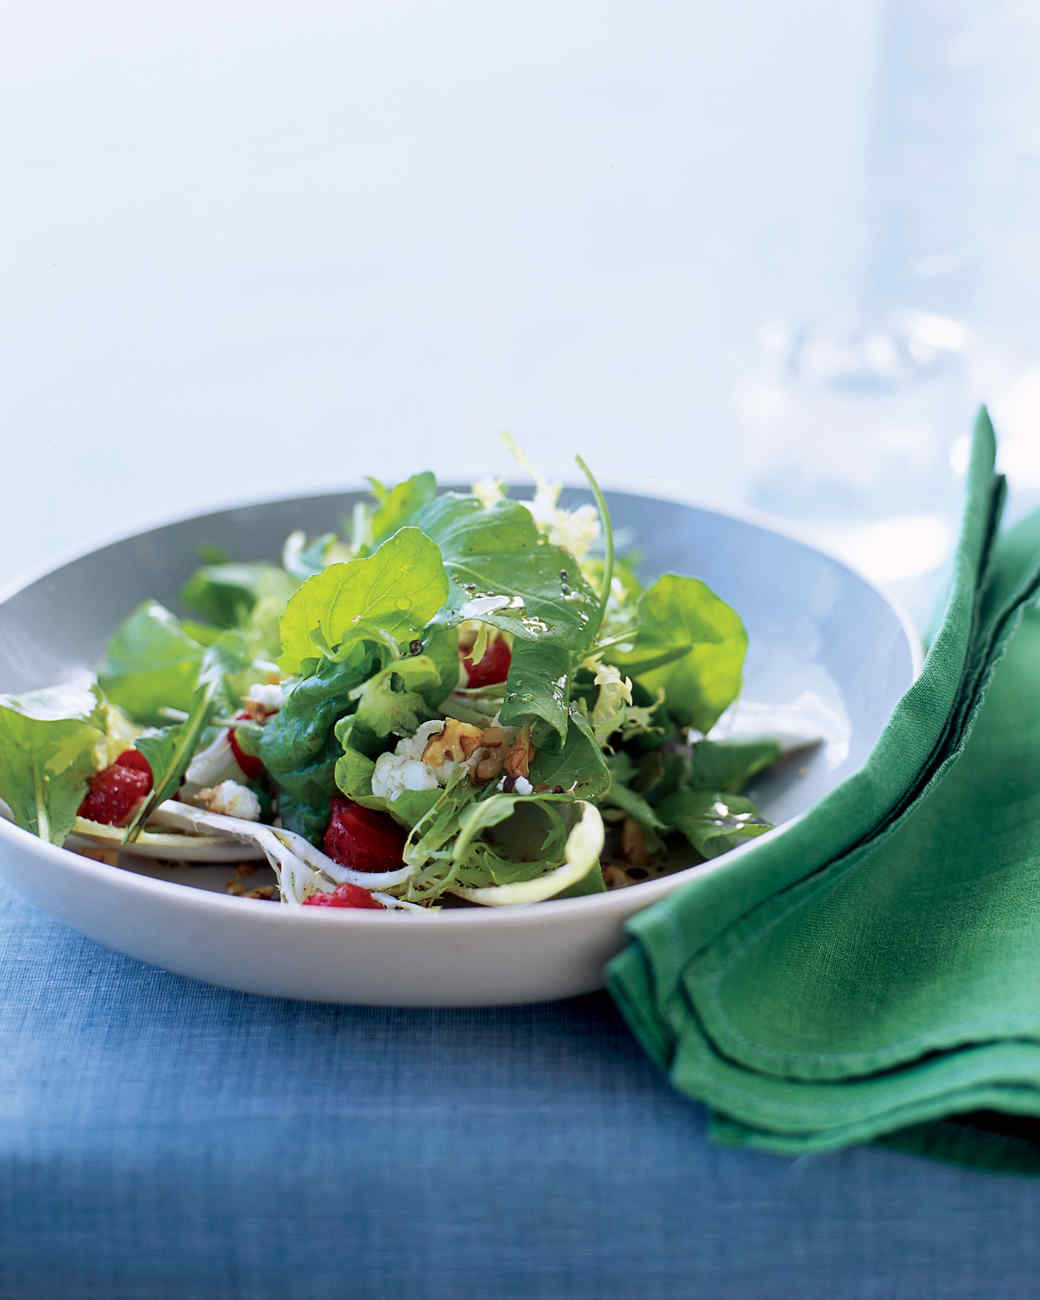 Arugula, Frisee, and Red Leaf Salad with Strawberries